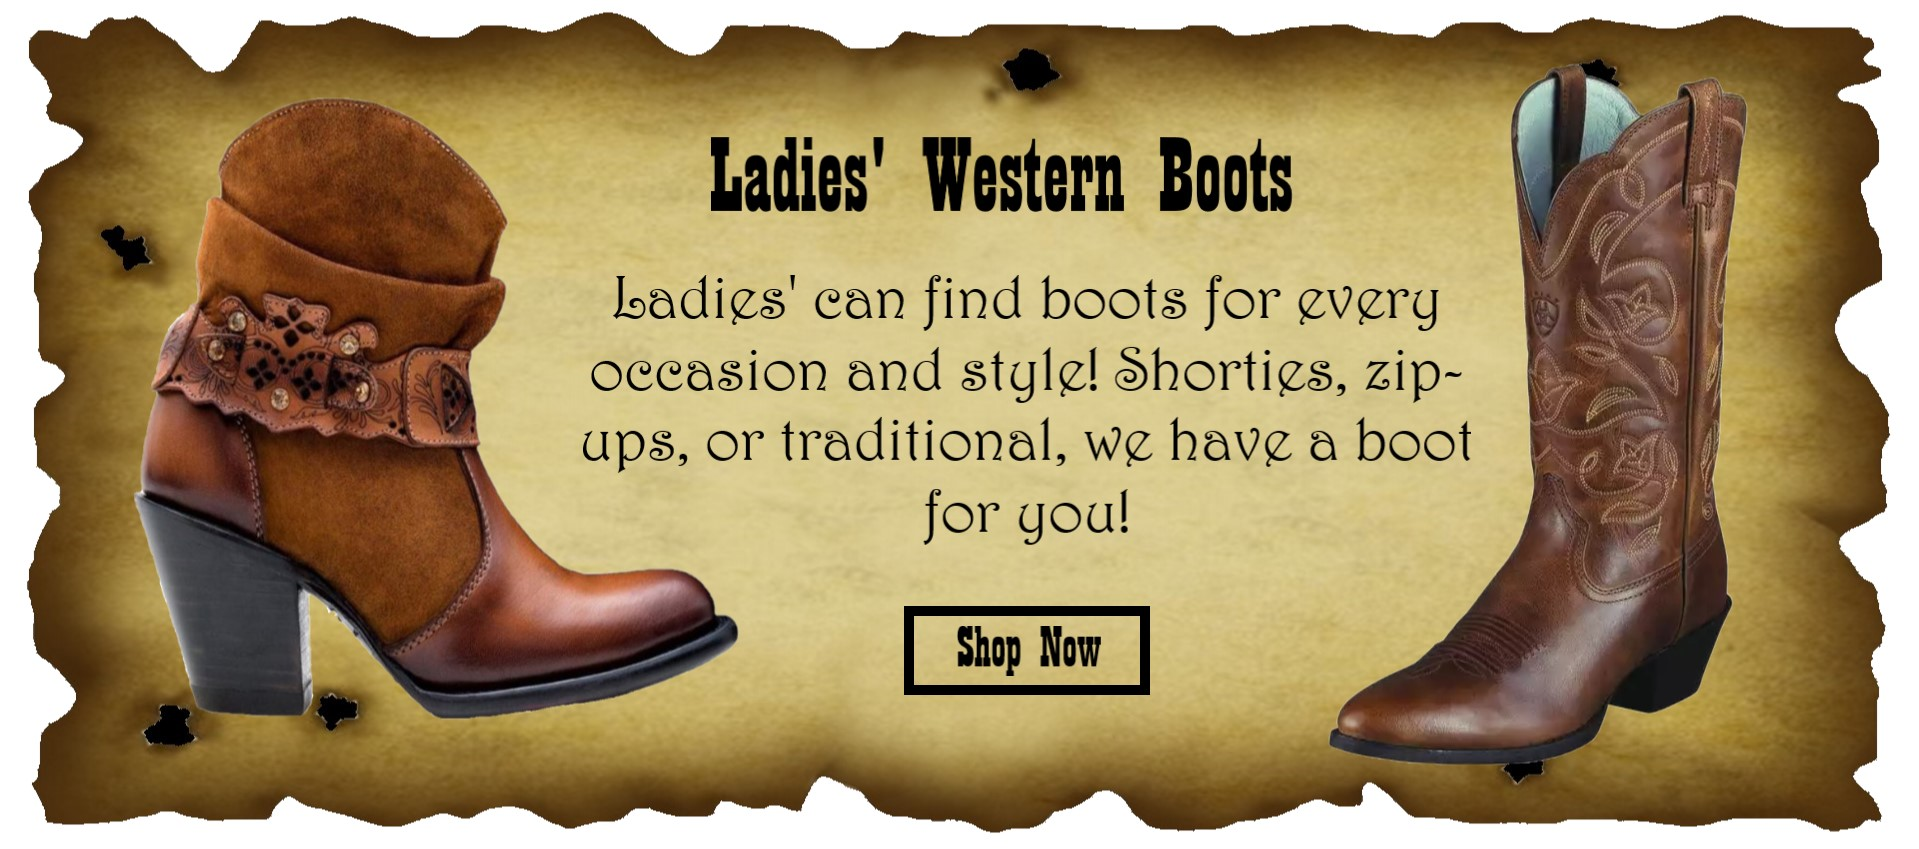 Ladies Western Boots Slider